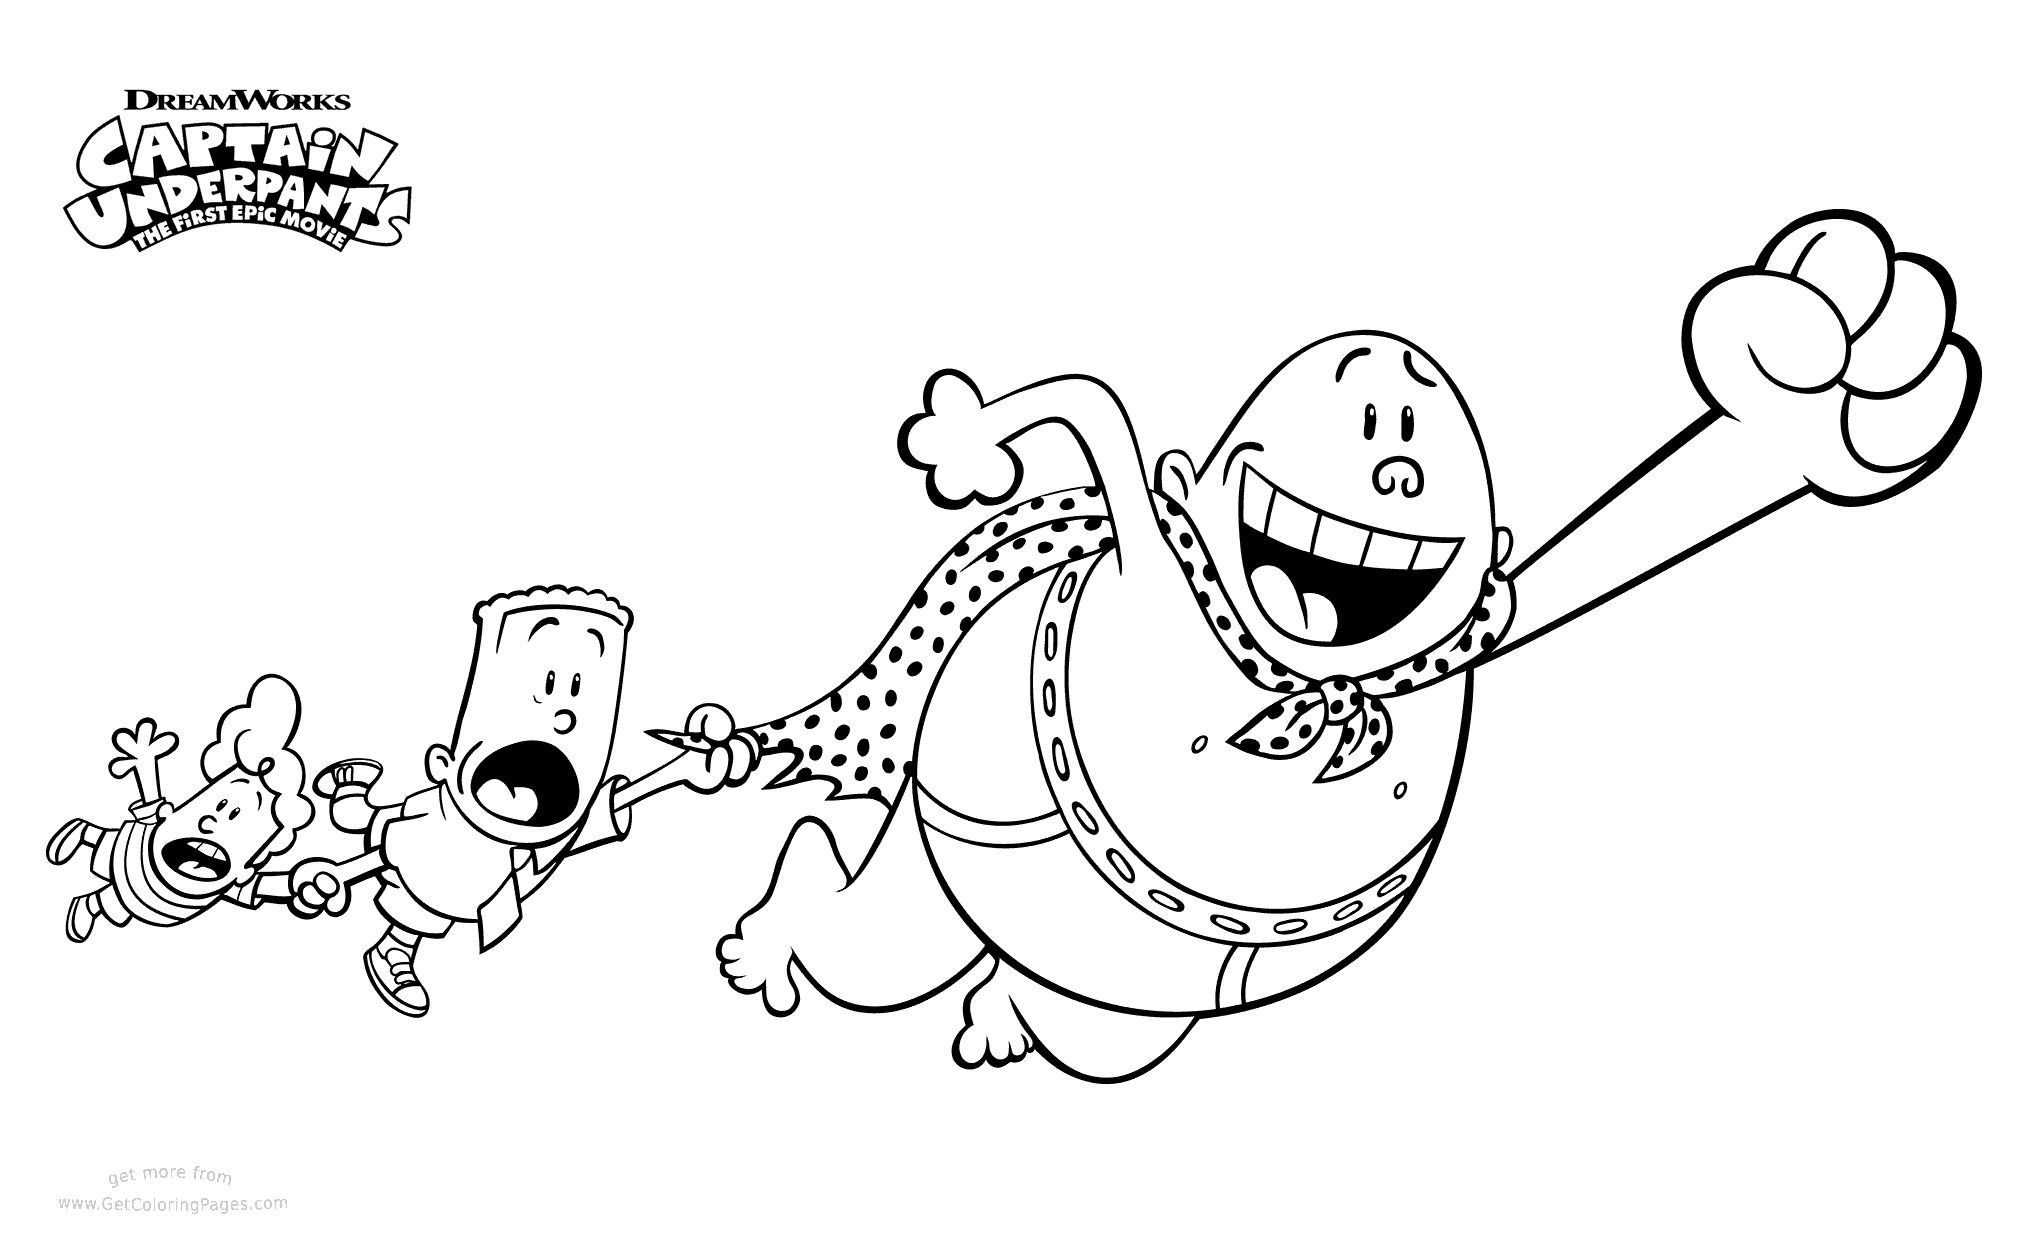 captain underpants coloring pages - captain underpants coloring pages sketch templates